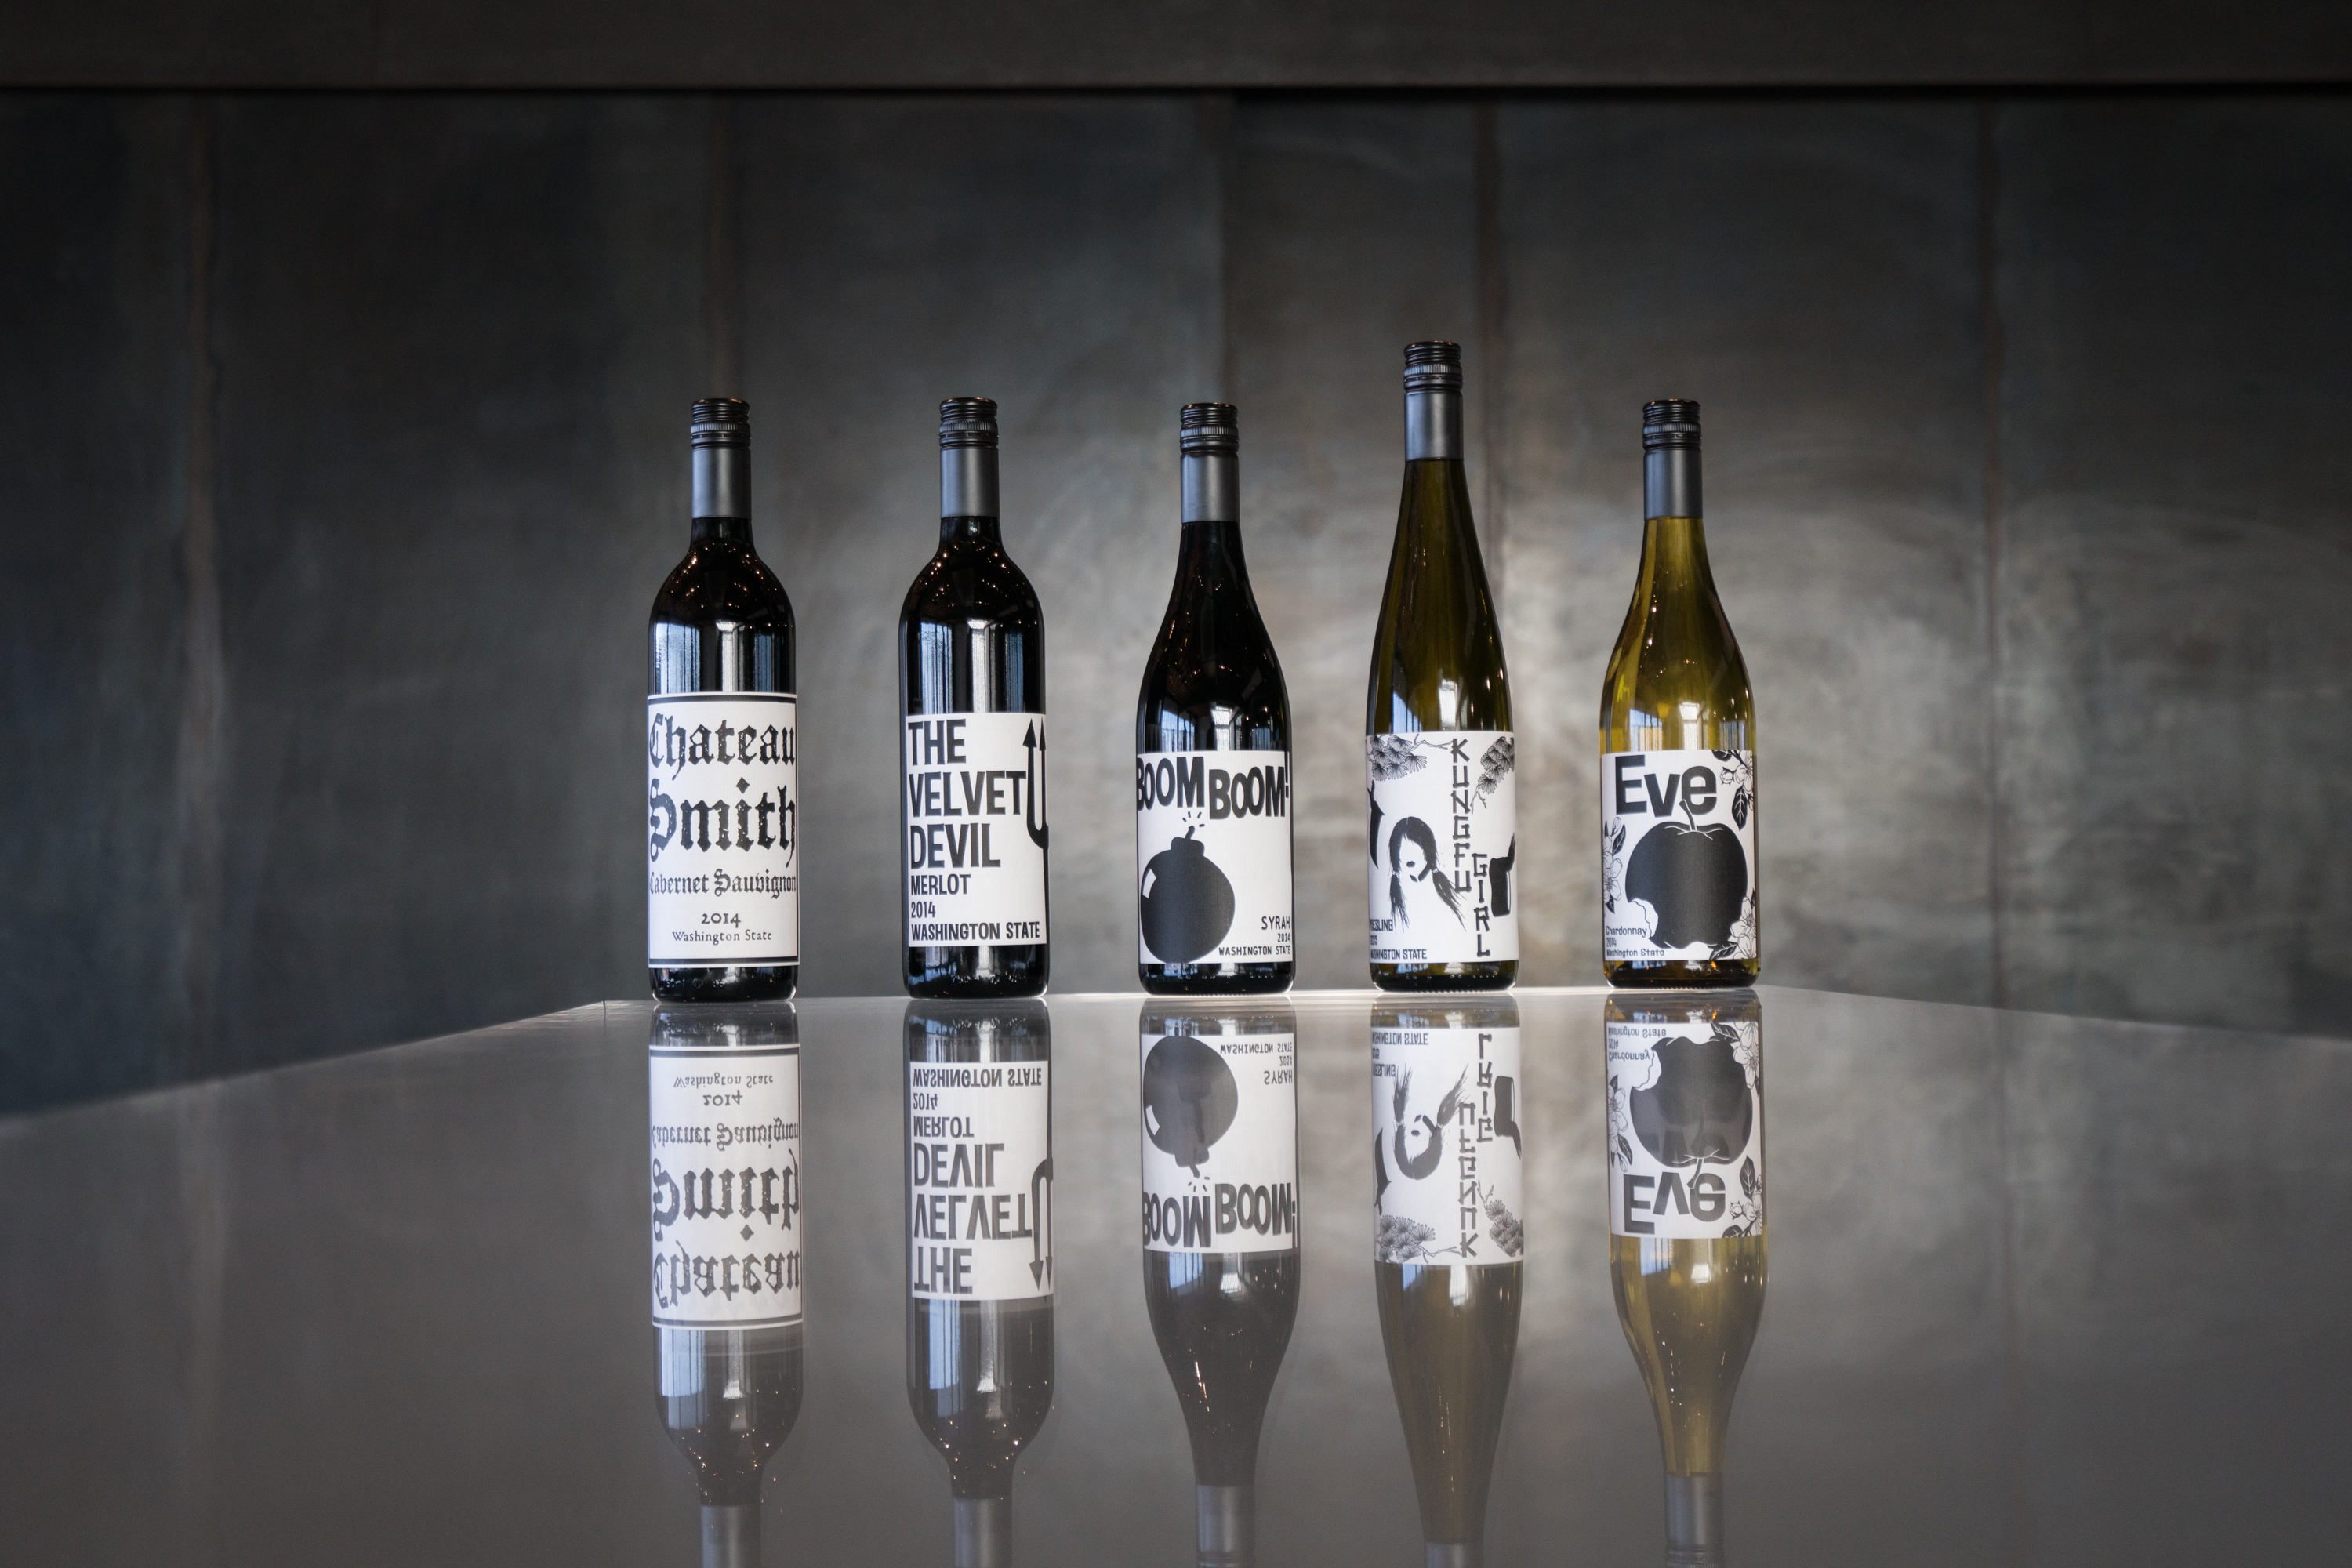 Constellation Brands paid $120 million to buy Charles Smith Wines, which owns a collection of five super and ultra premium wines.